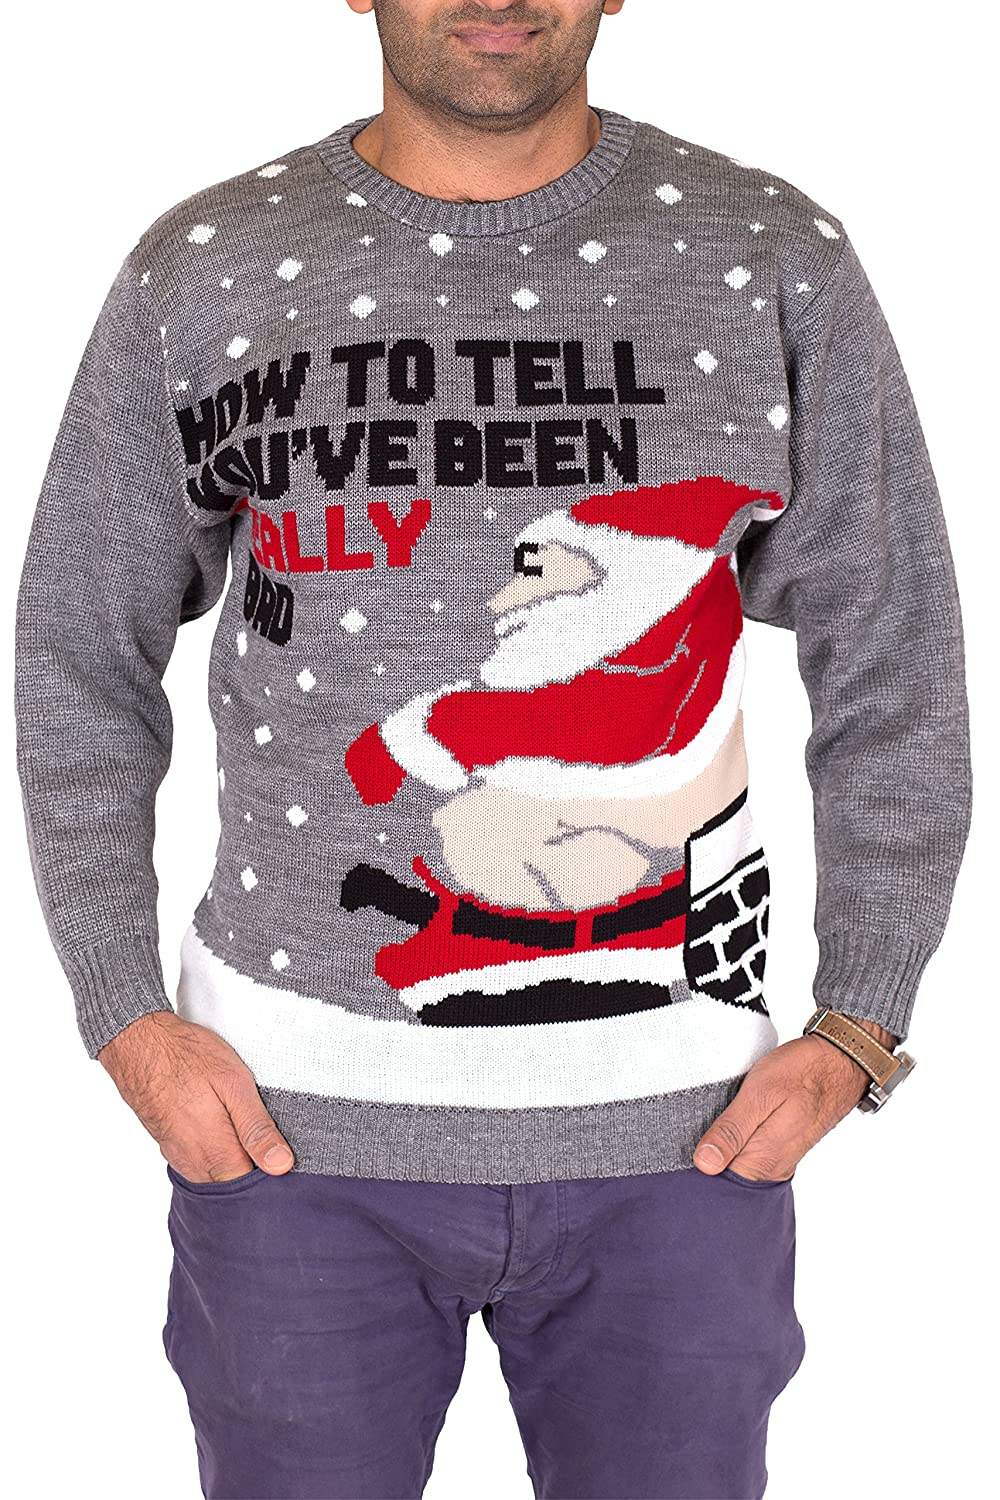 Noroze Mens Womens Unisex Jumper Xmas Pullover Really Bad Santa + Free Hat